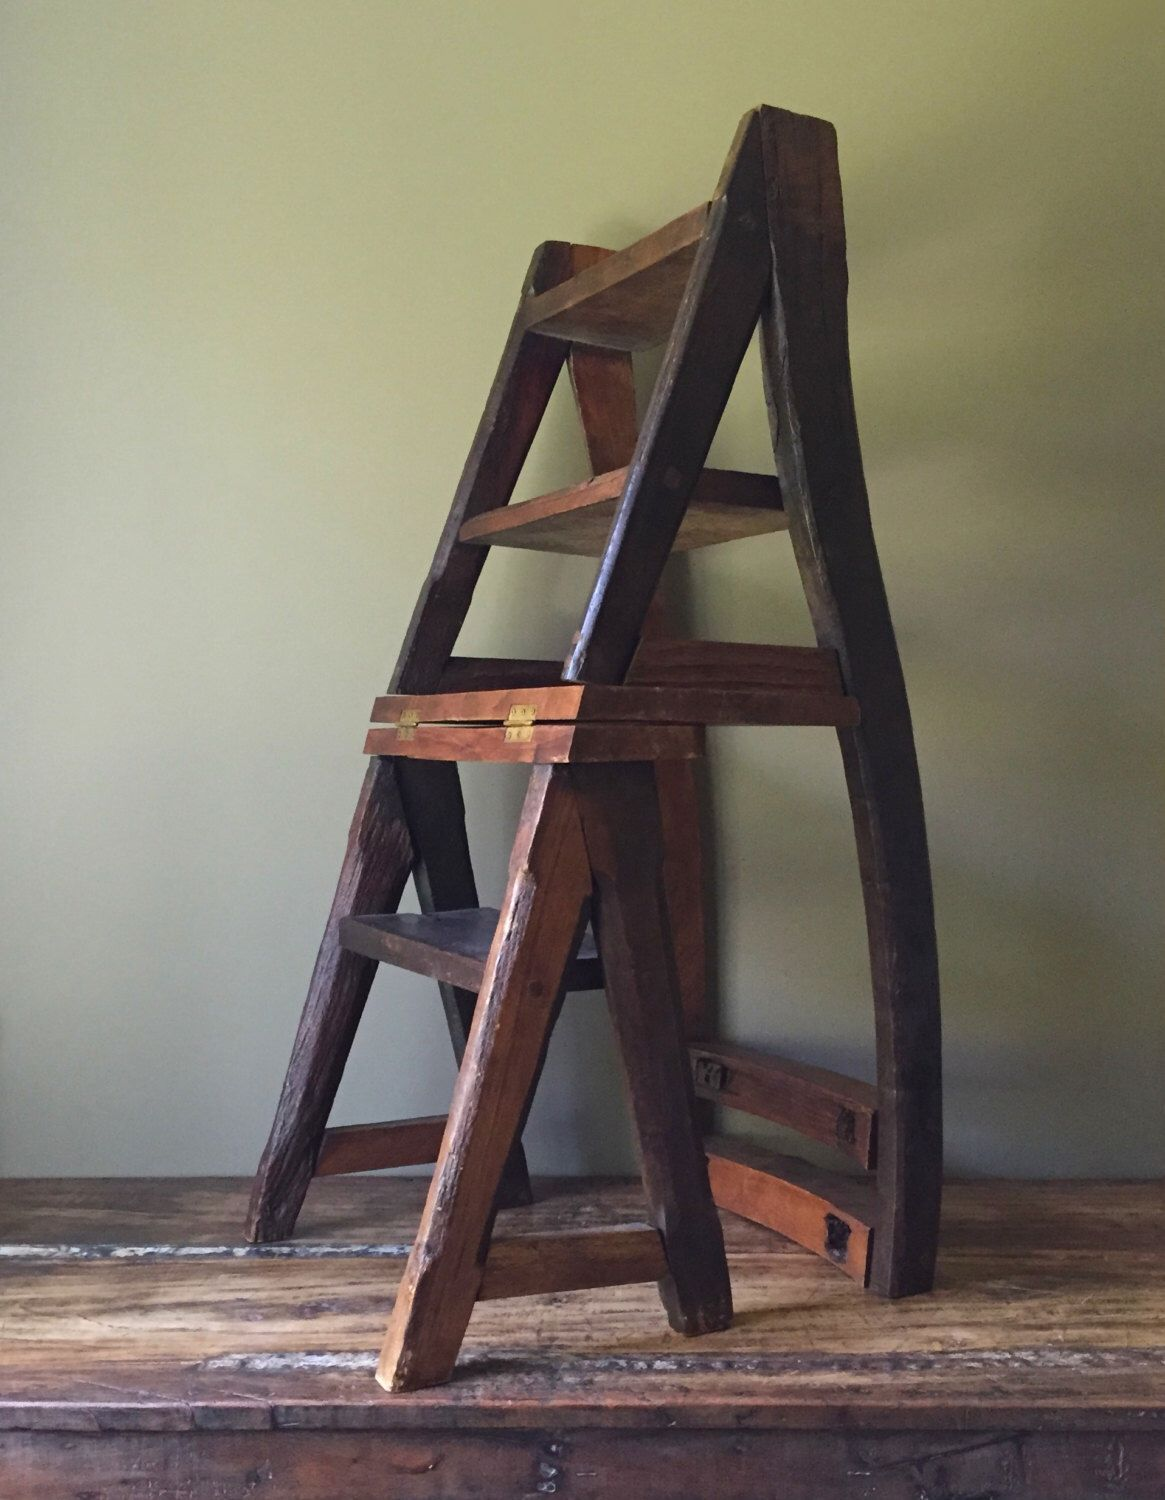 Reclaimed Primitive Wood Step Ladder Chair Rustic Ben Franklin Folding Library Seat Rustic Reclaimed Wood Chair Recycled Wood Furniture Rustic Reclaimed Wood